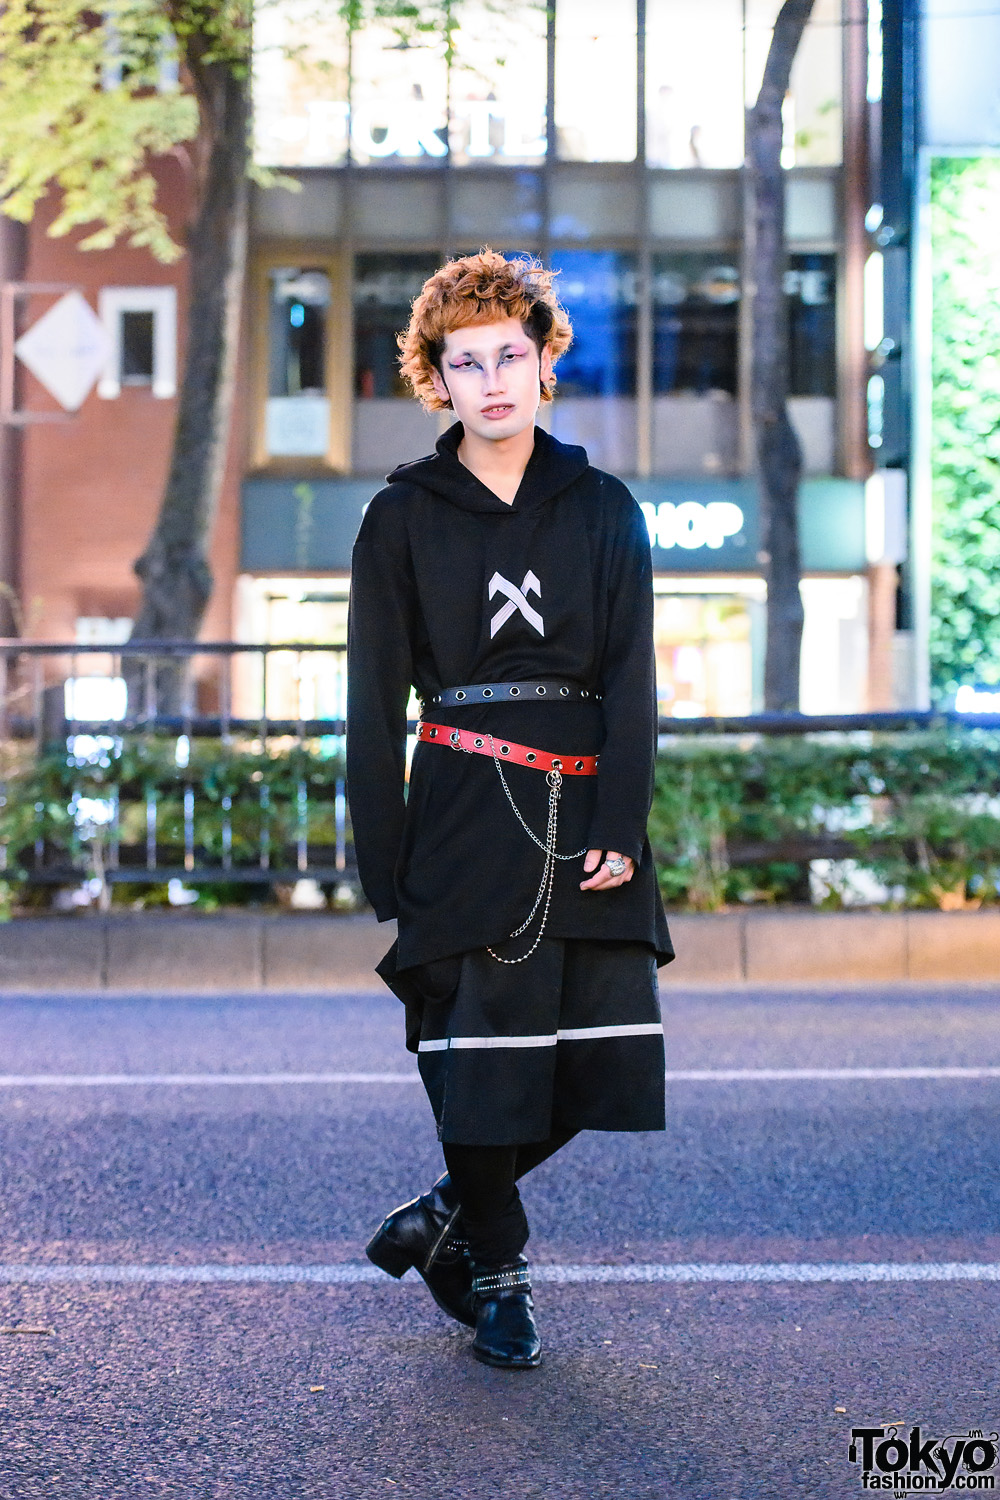 All Black Look in Harajuku w/ Striking Eye Makeup, Hoodie Sweater, Long Shorts, Layered Grommet Belts, Knee Socks & Studded Boots